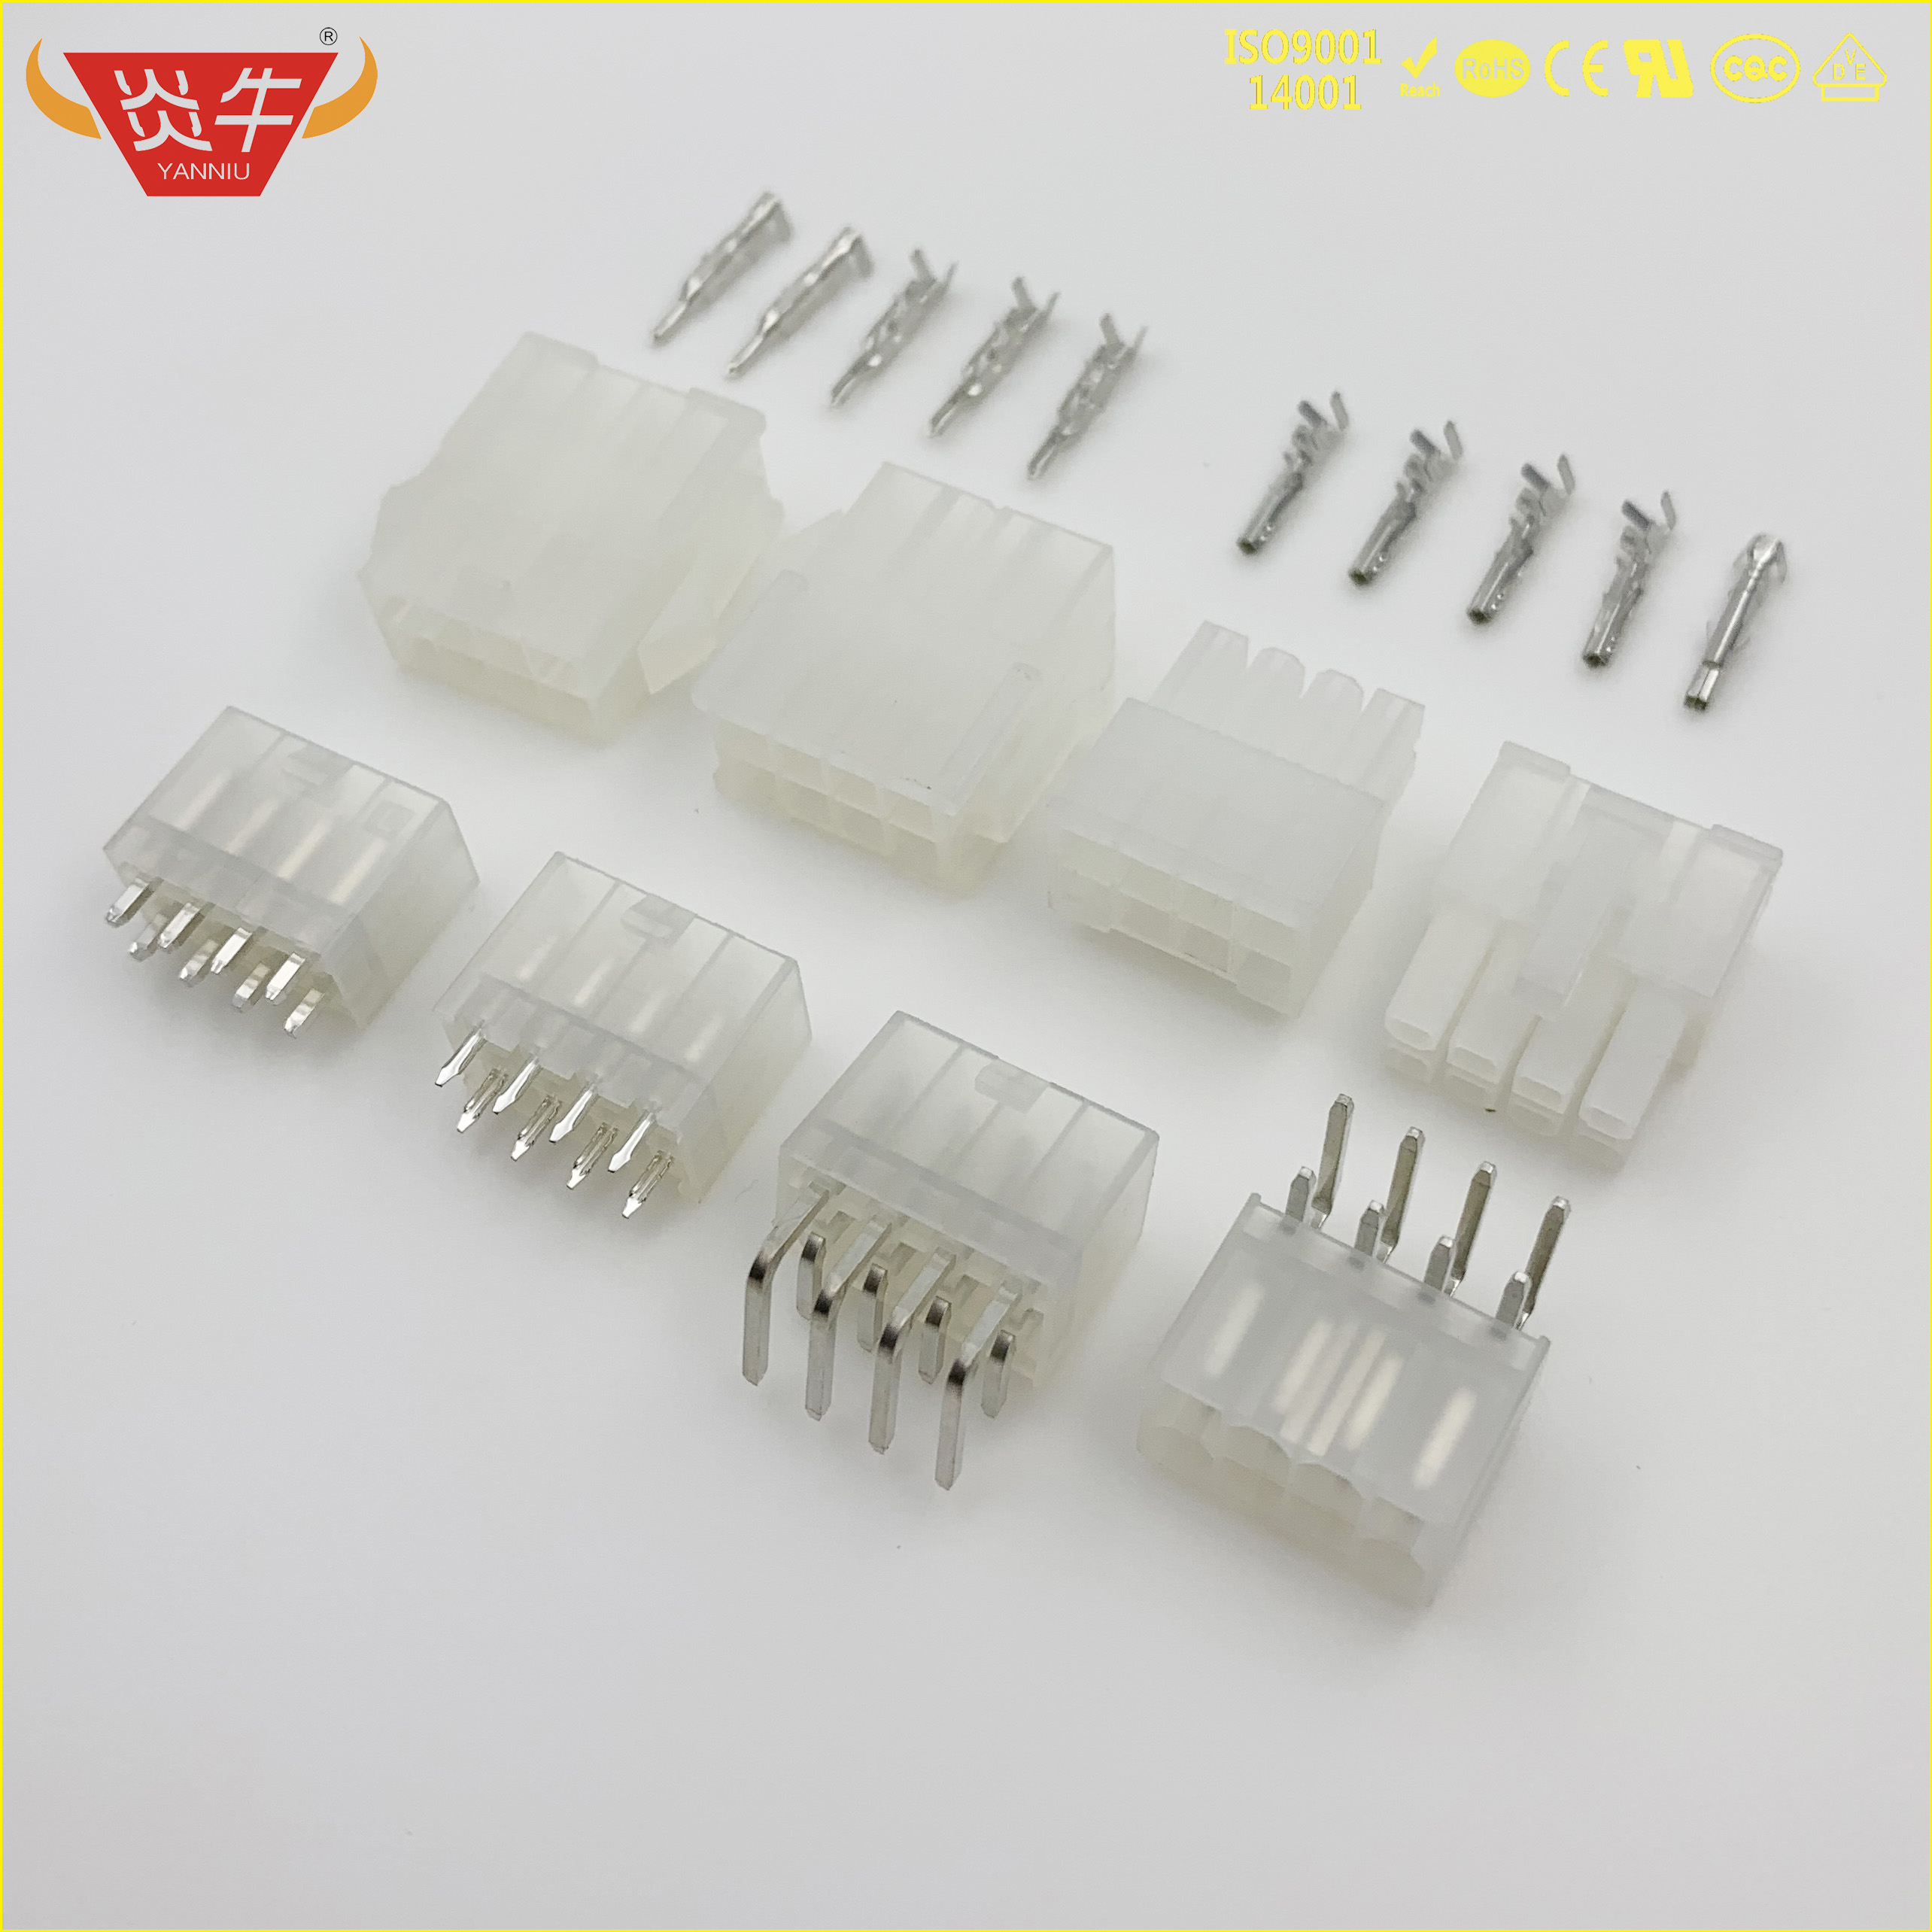 <font><b>5557</b></font> 5559 5569 5566 4.2 DOUBLE ROW WHITE STRIP CONNECTOR <font><b>4.2mm</b></font> HOUSING WAFER TERMINAL HX42000-RT HX4200-R HX42001-PT HX42001-P image